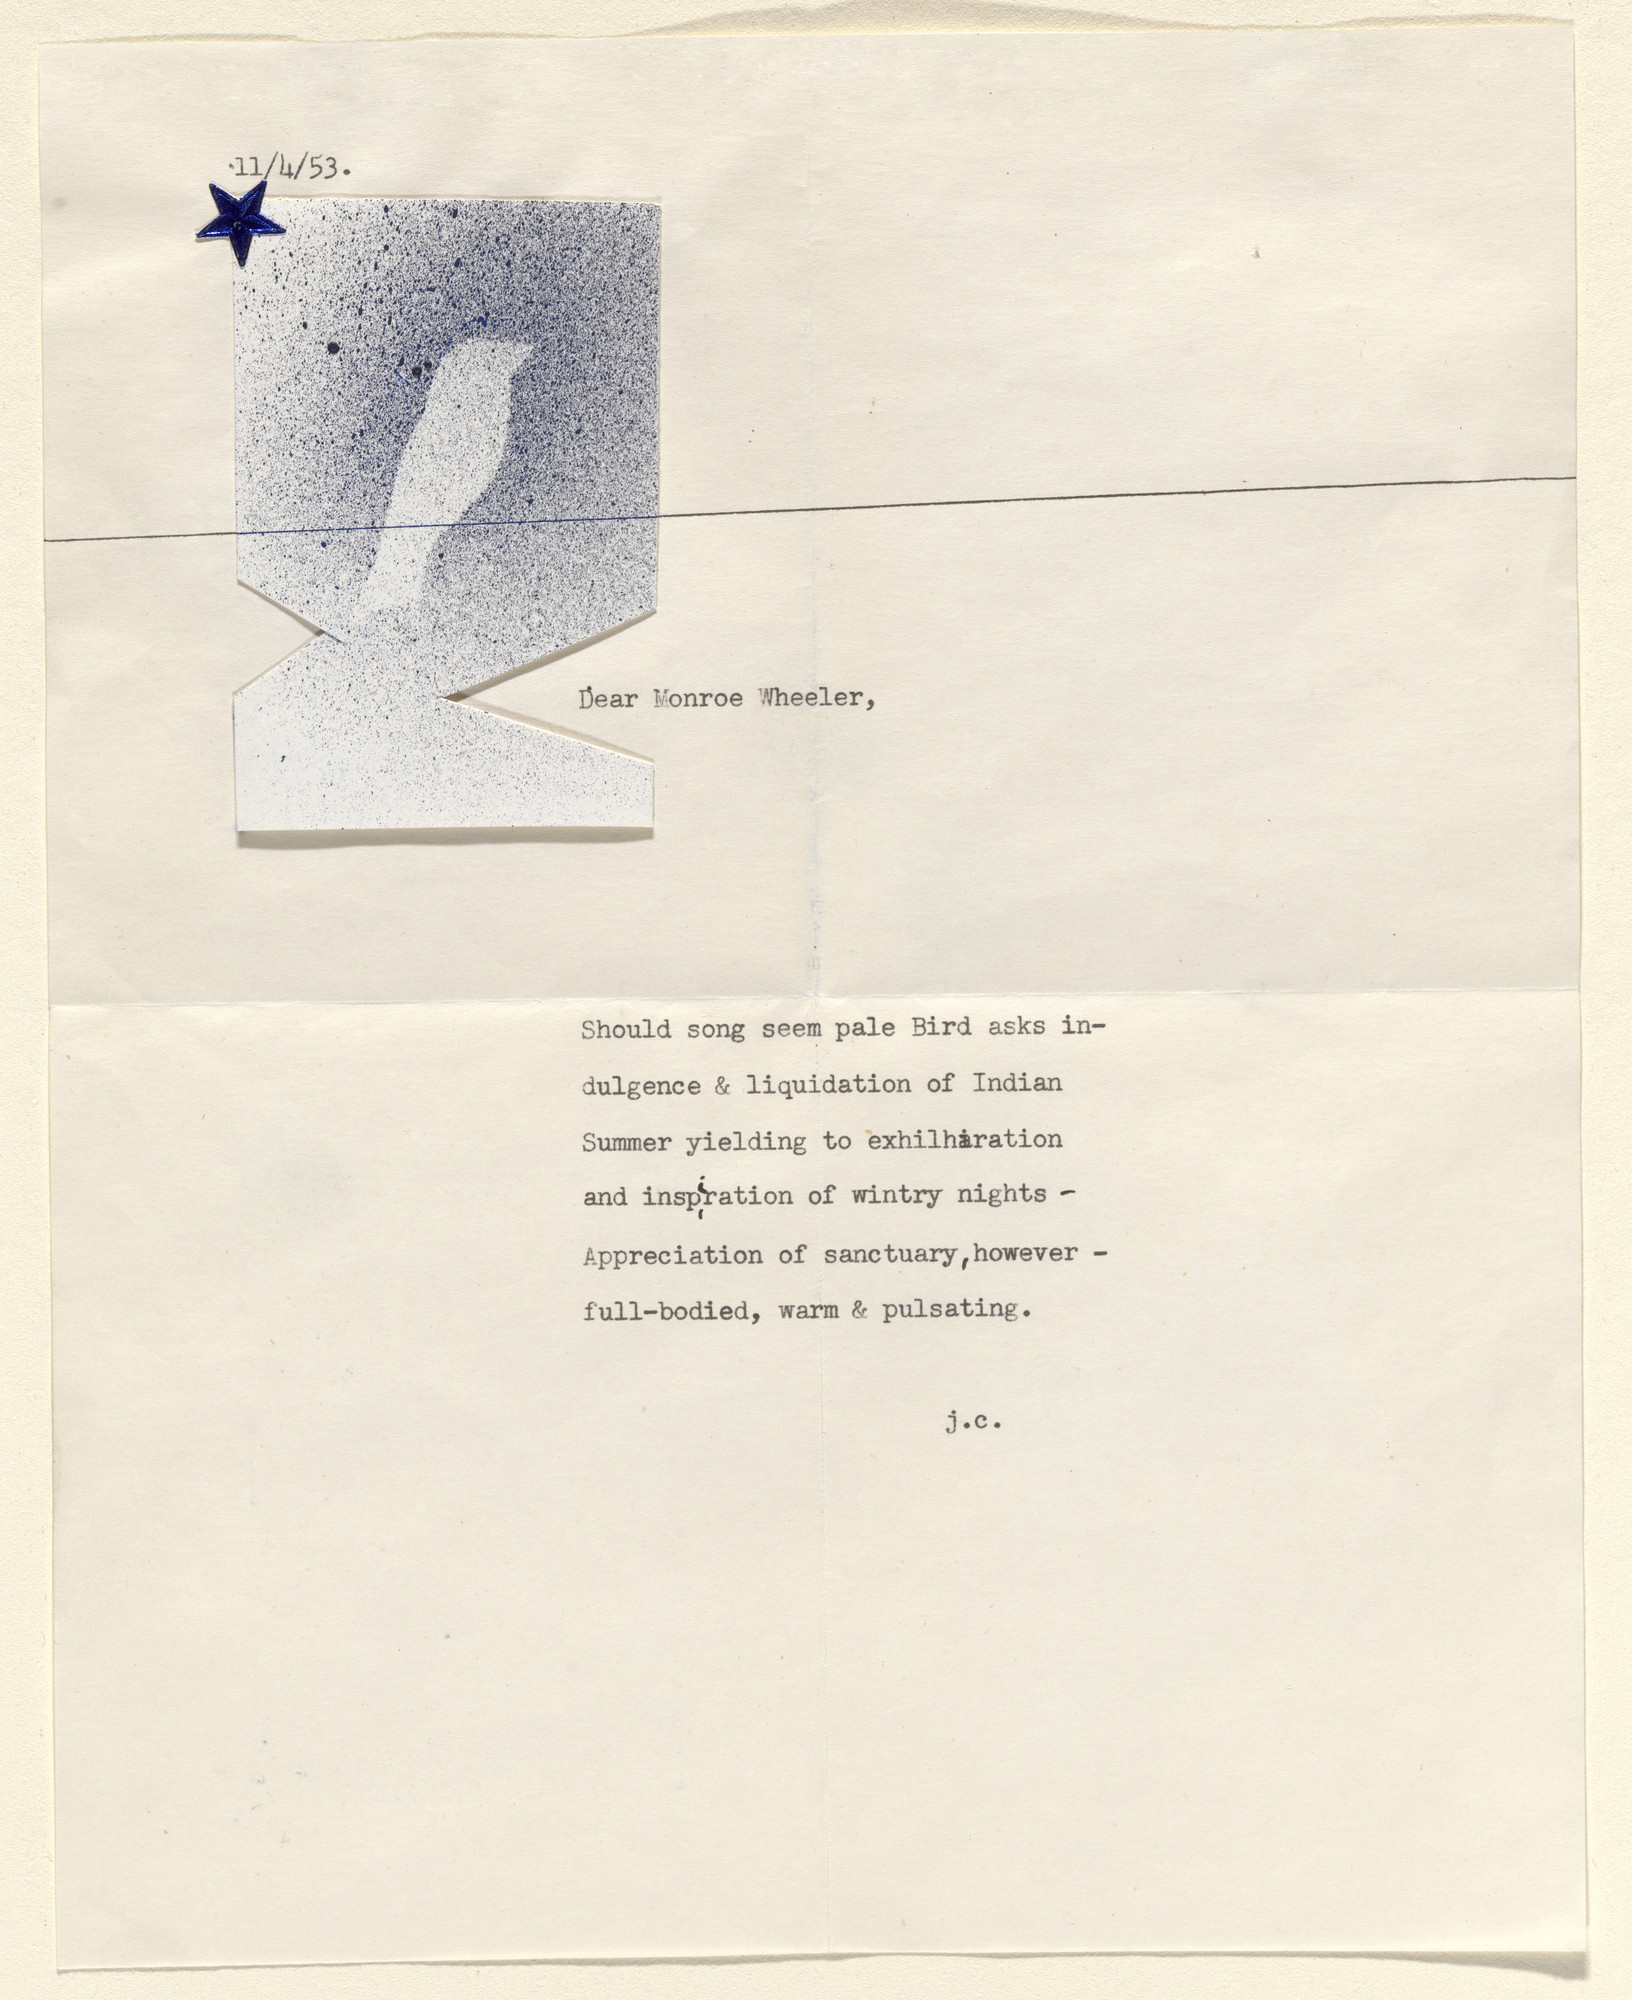 Joseph Cornell. Constellation (Poem and collage for a Christmas card). 1953